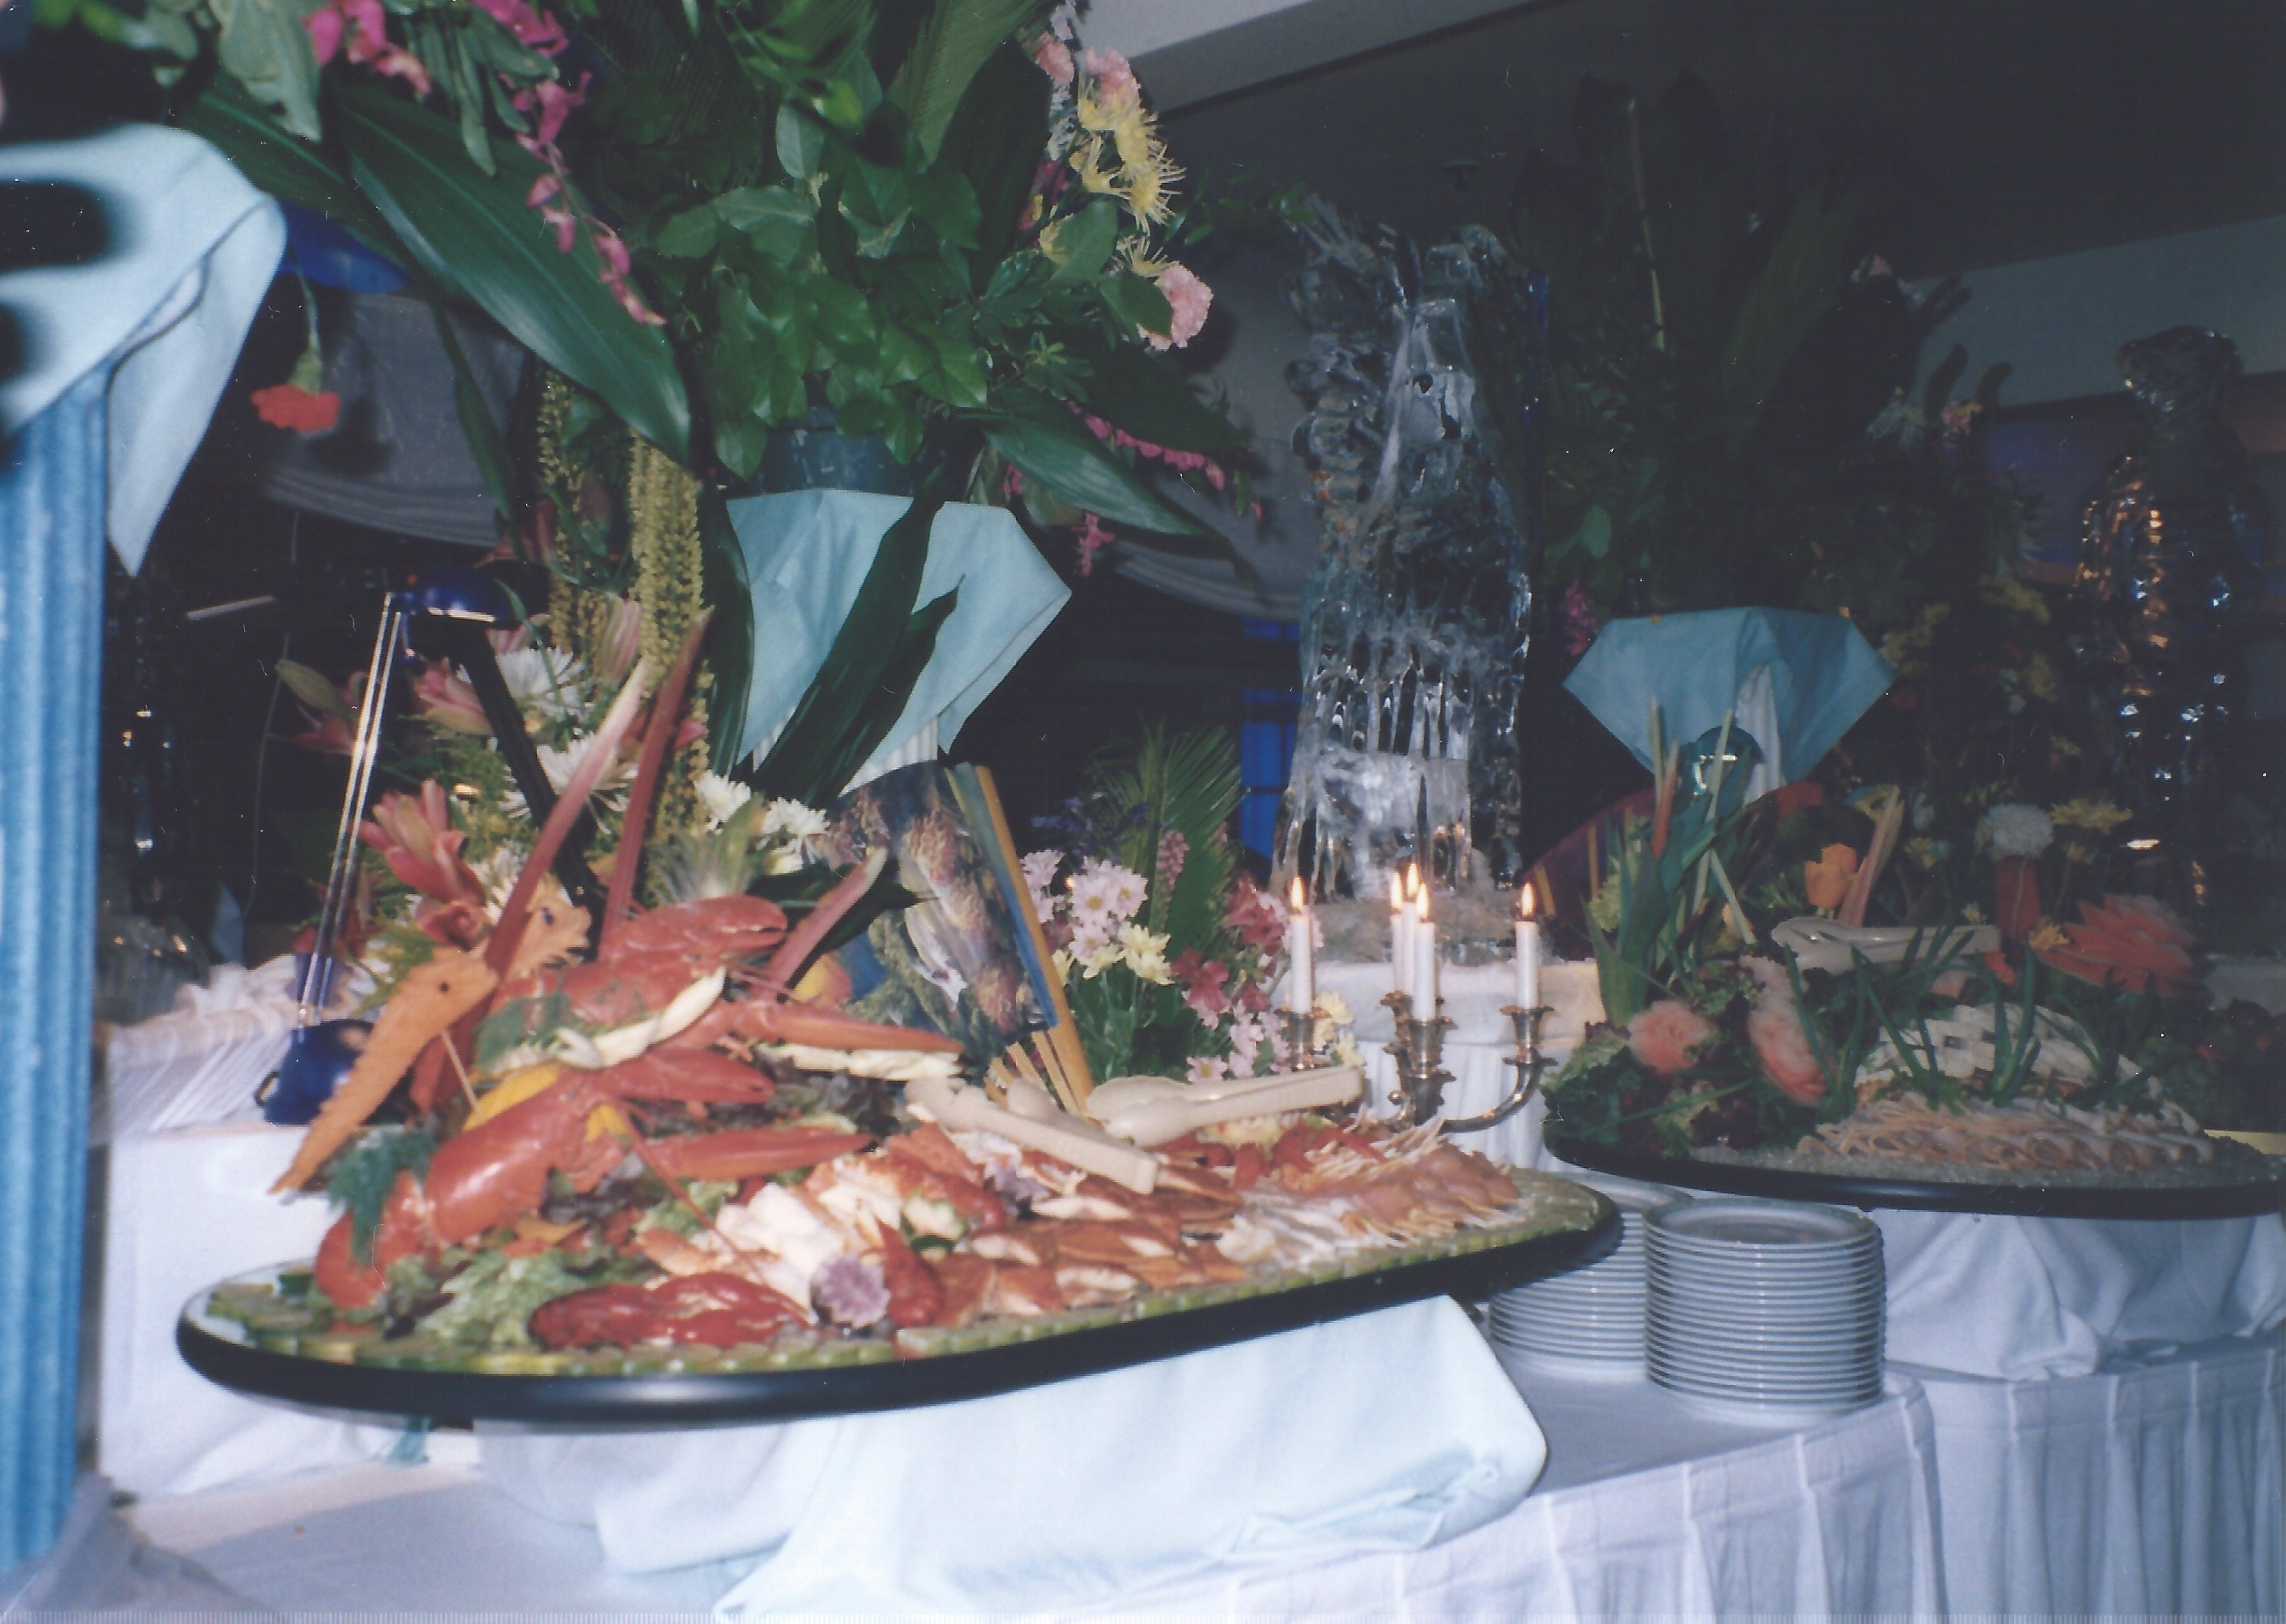 Photograph of a seafood buffet spread featuring a large lobster